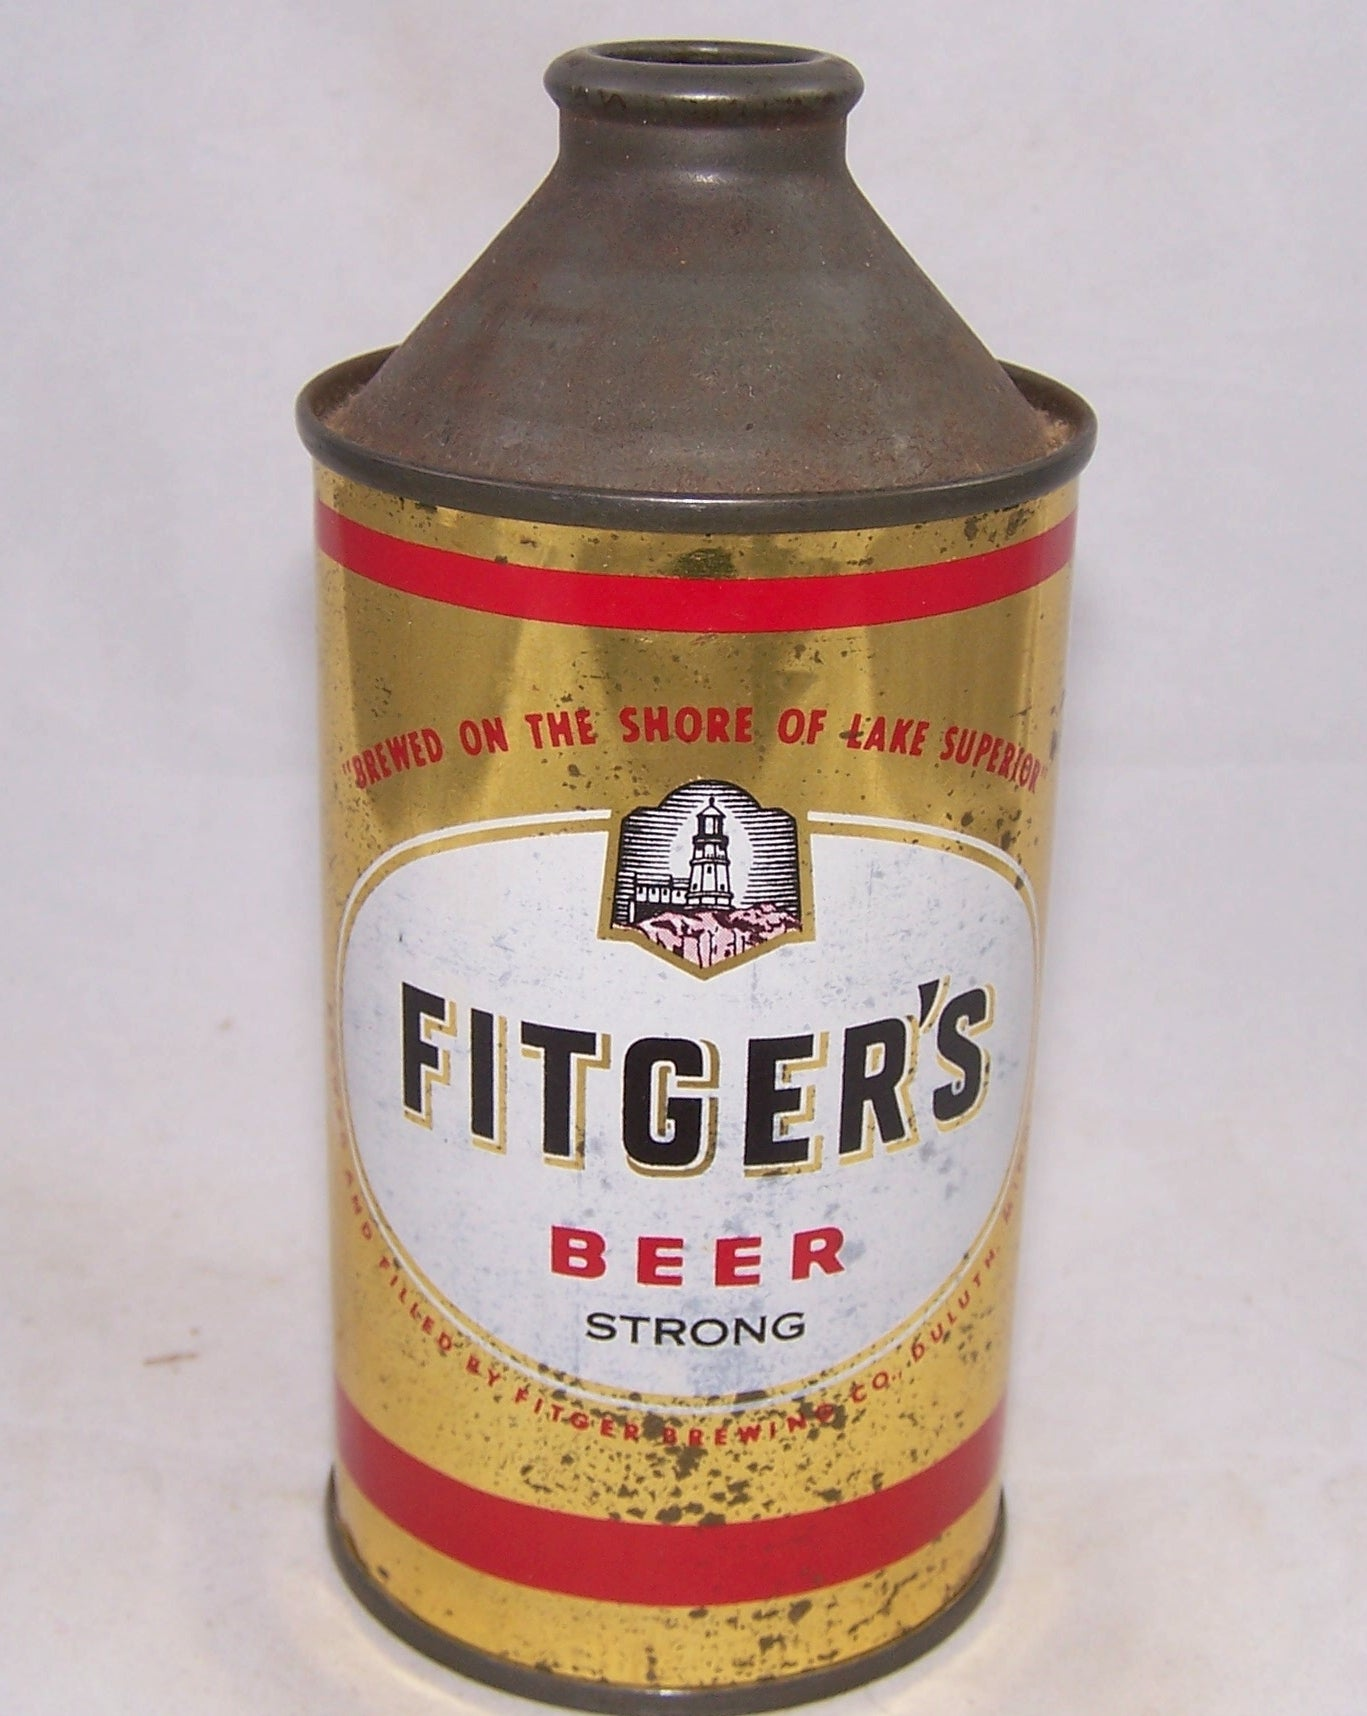 Fitger's Strong Beer, USBC 162-23, Grade 1- Sold on 11/05/18